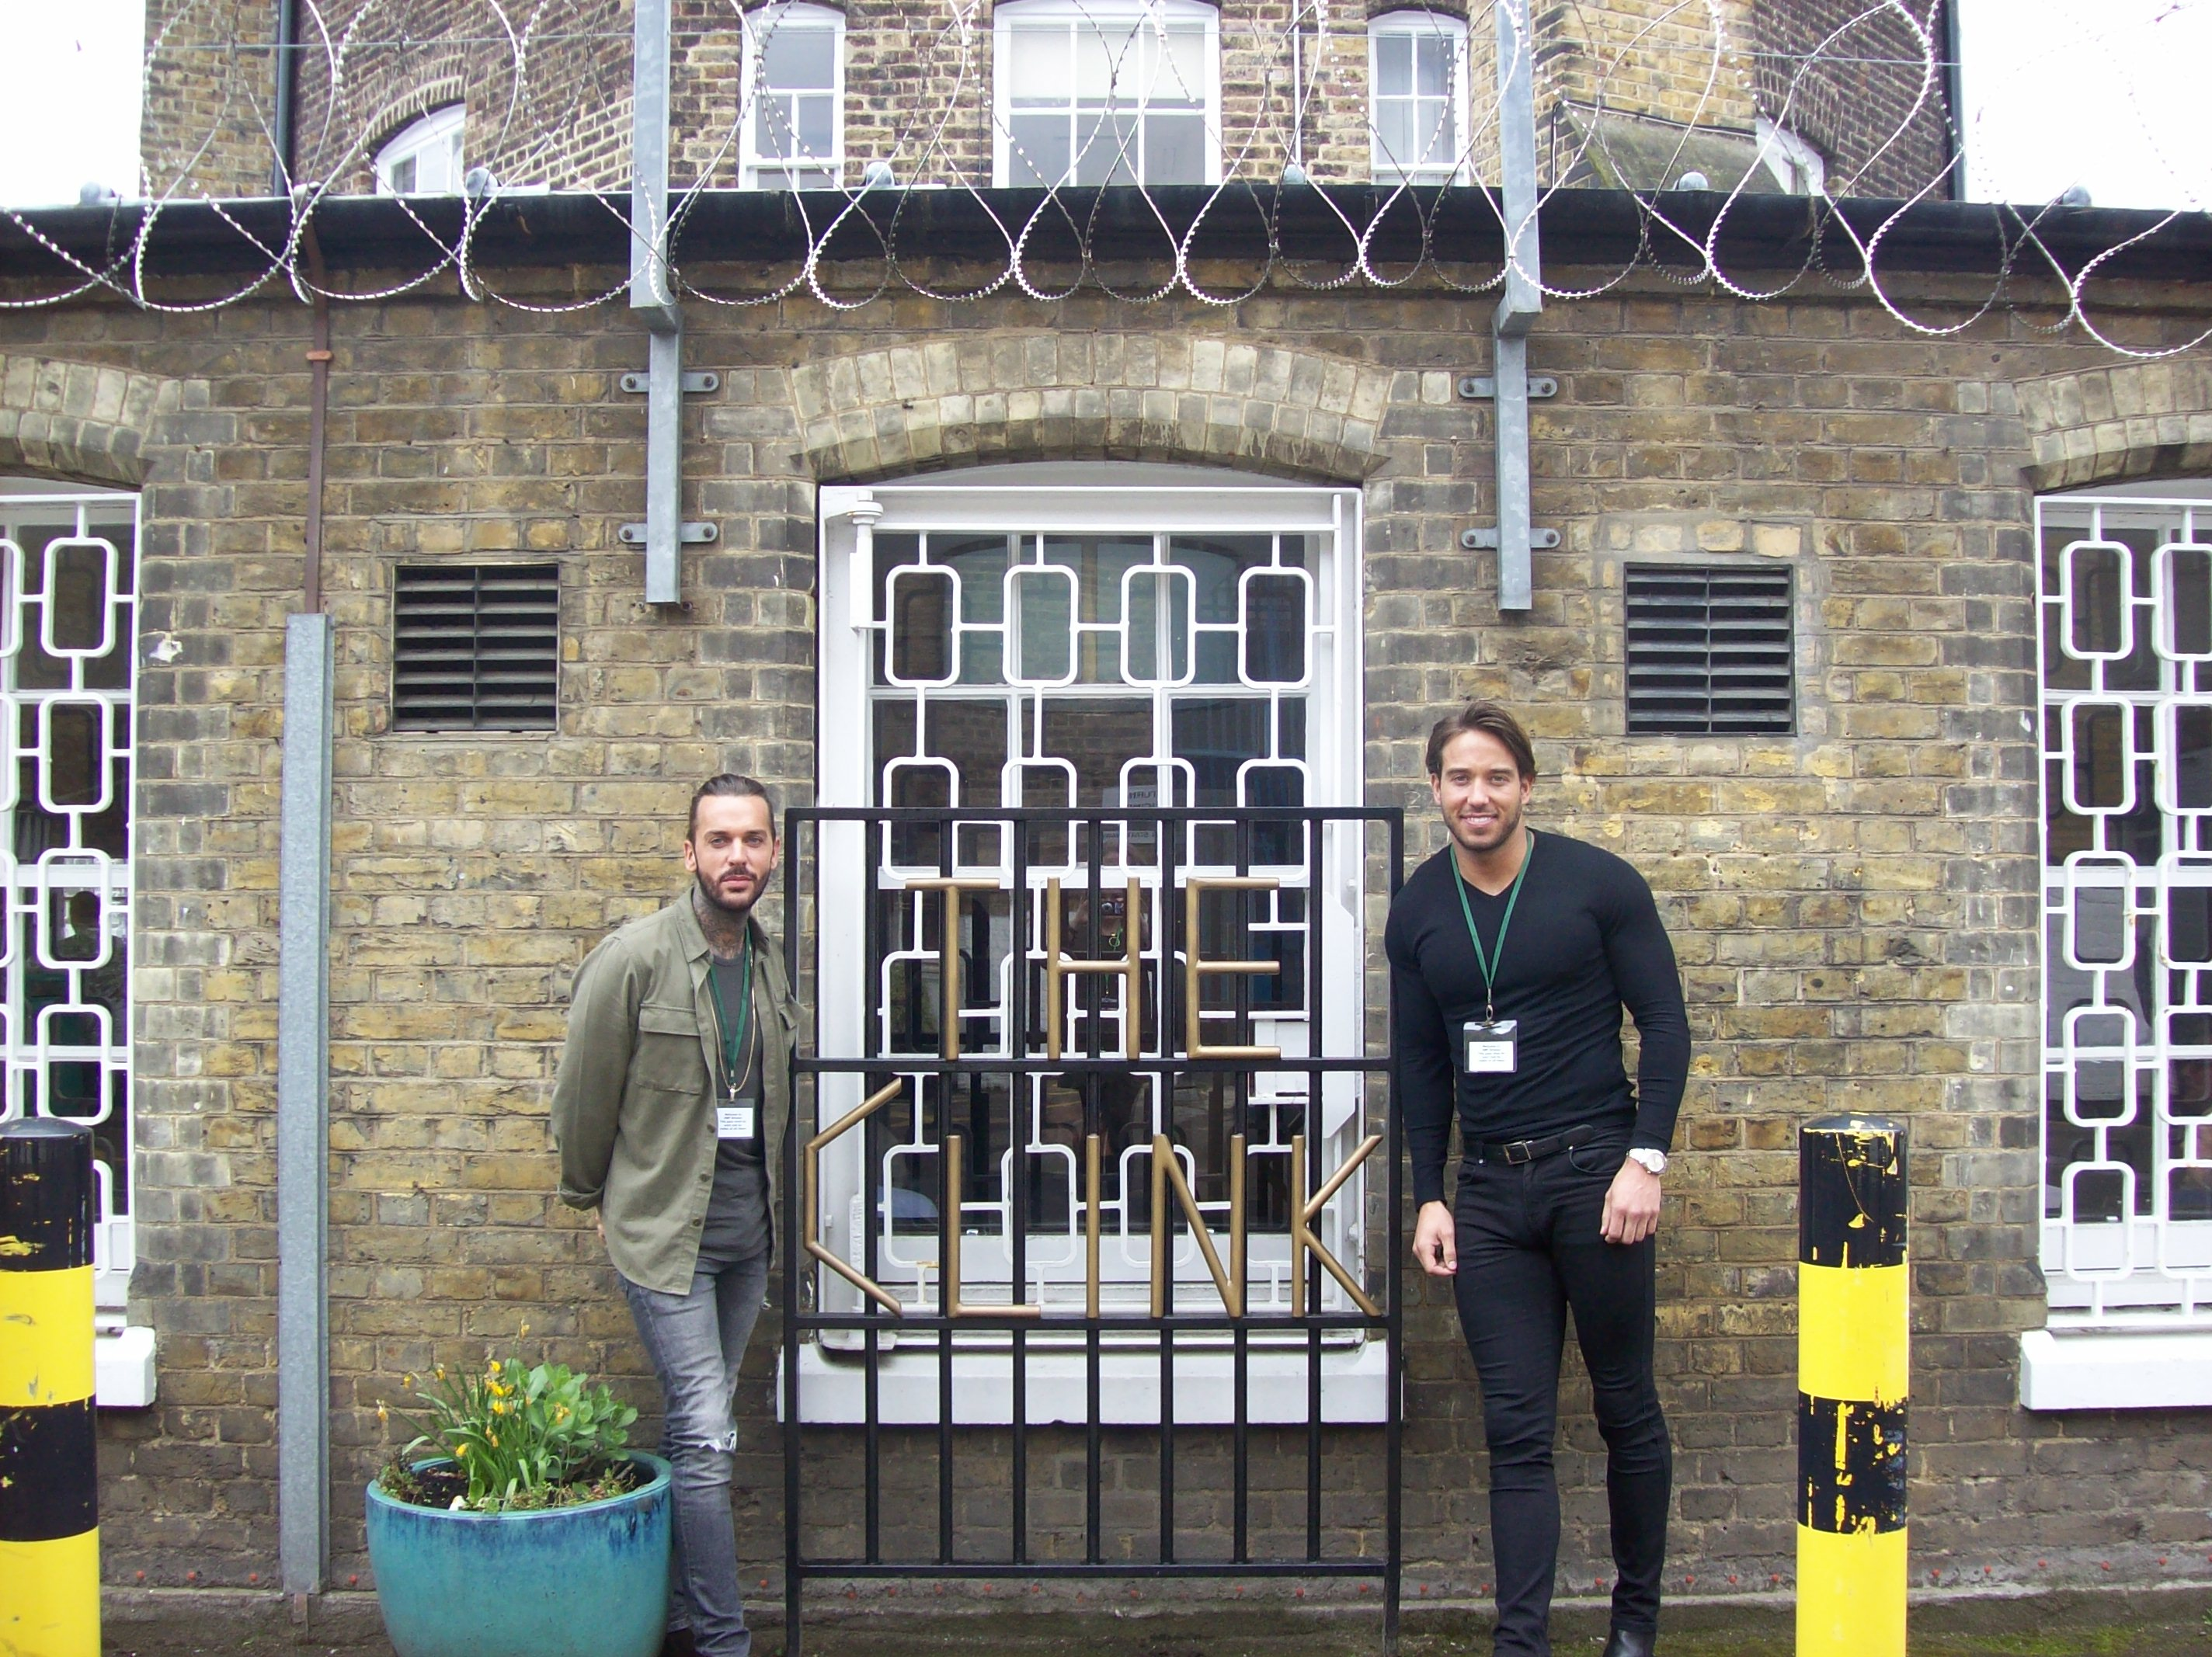 Awardwinning Prisoner Rehabilitation Scheme The Clink Restaurant At Hmp  Brixton In London Partnered With Owner Of Lockie's Kitchen And The Only Way  Is